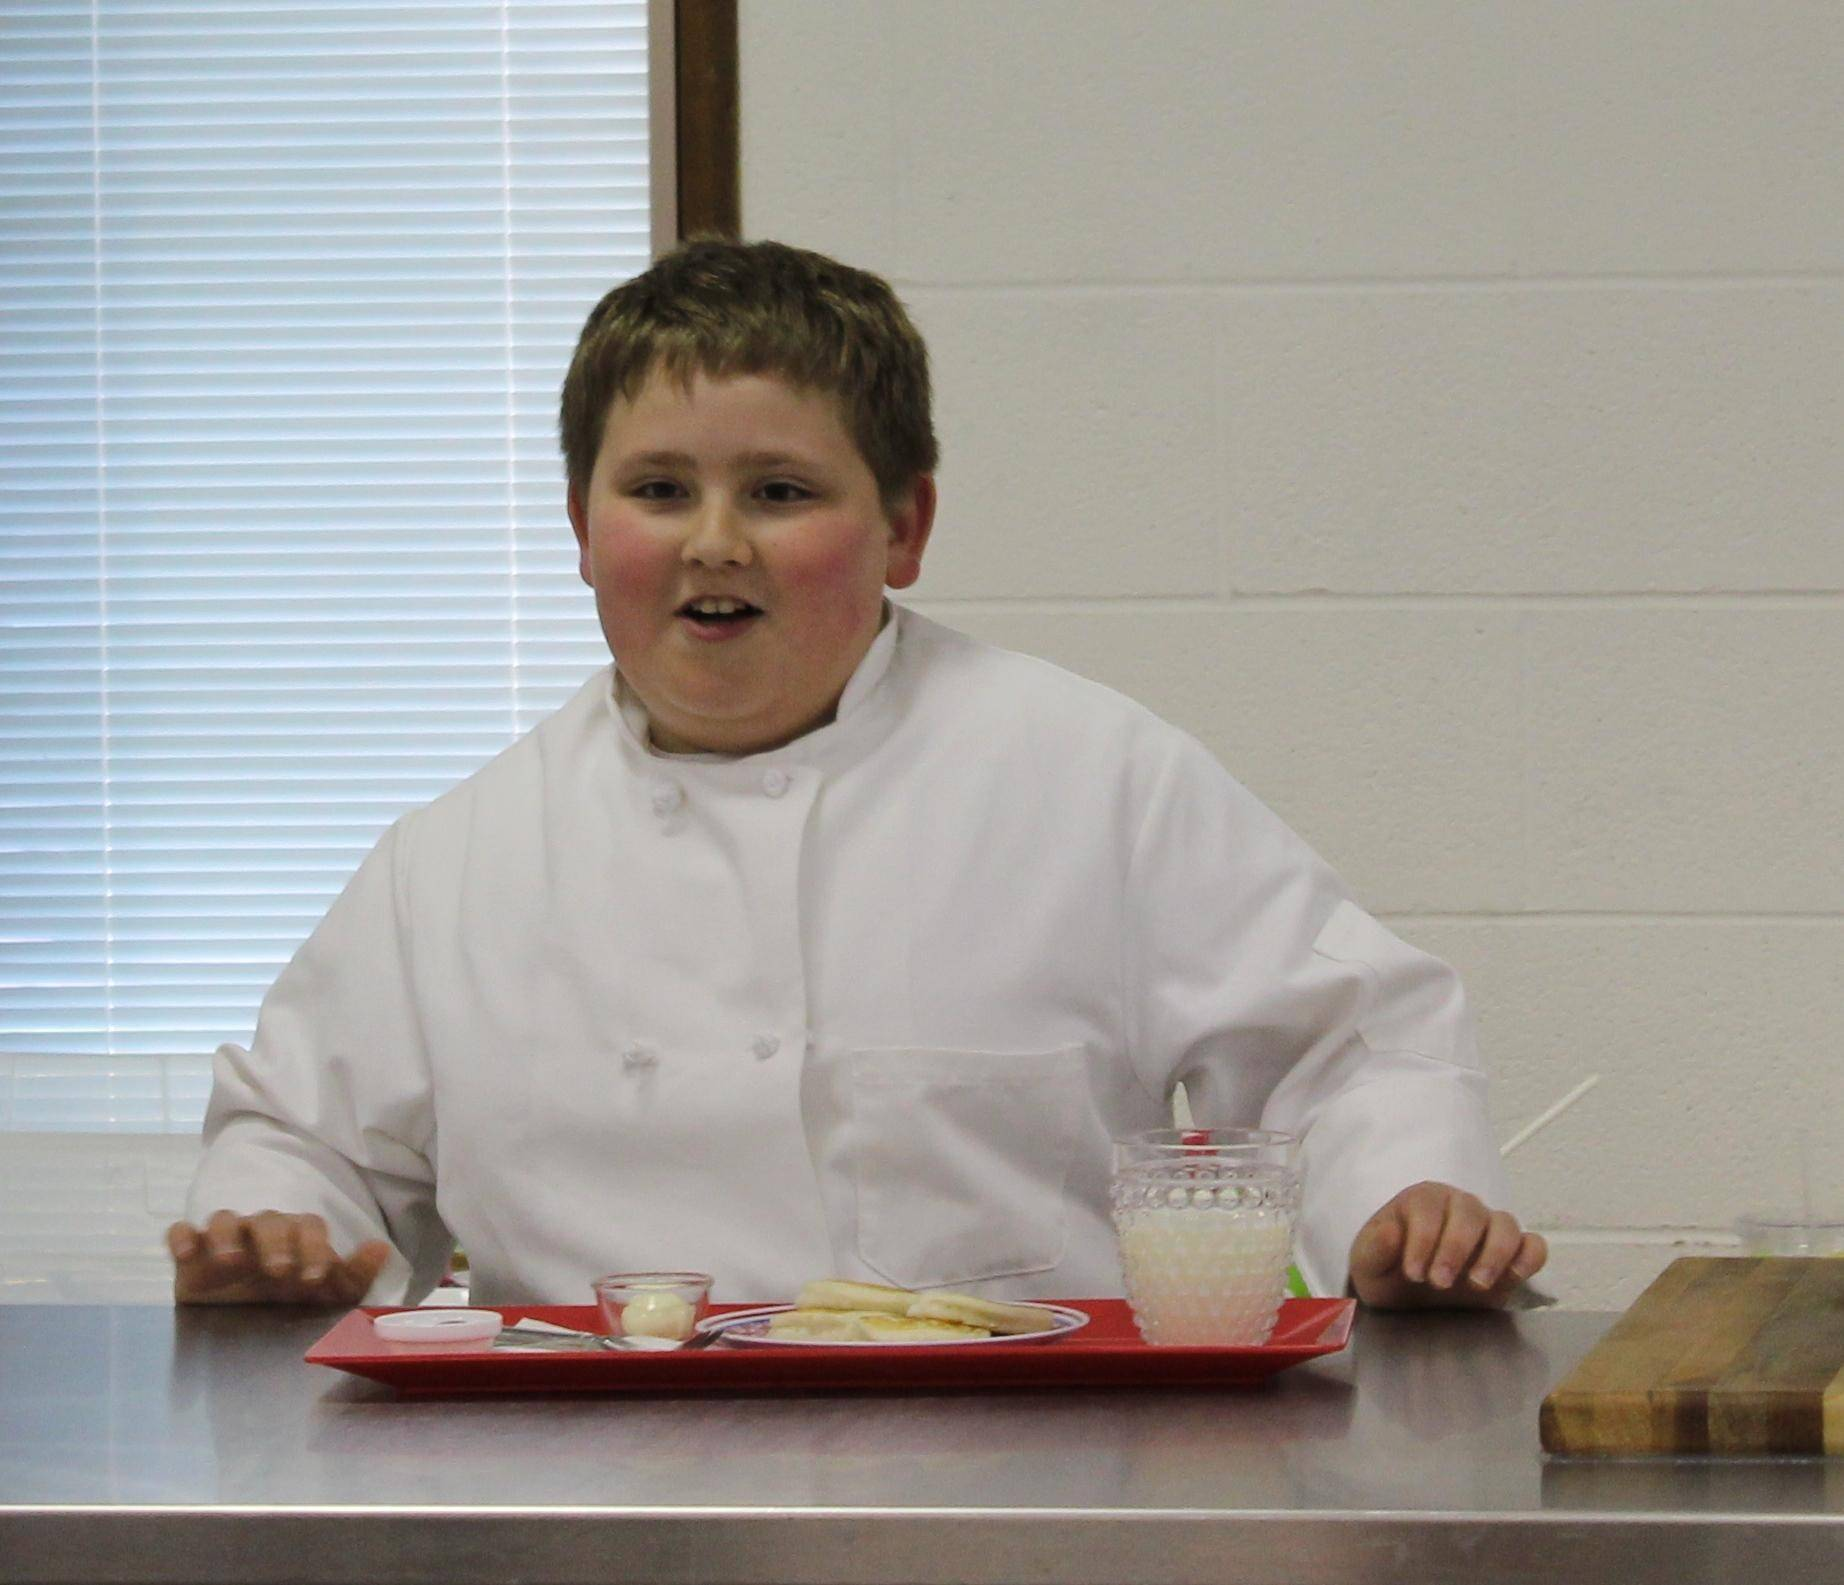 Ely Greenfield of Elgin took home grand champion food demonstration honors with a how-to speech on baking biscuits. He mixed the batter and cooked the treats right in front of the audience. He said it was his grandmother's special recipe.